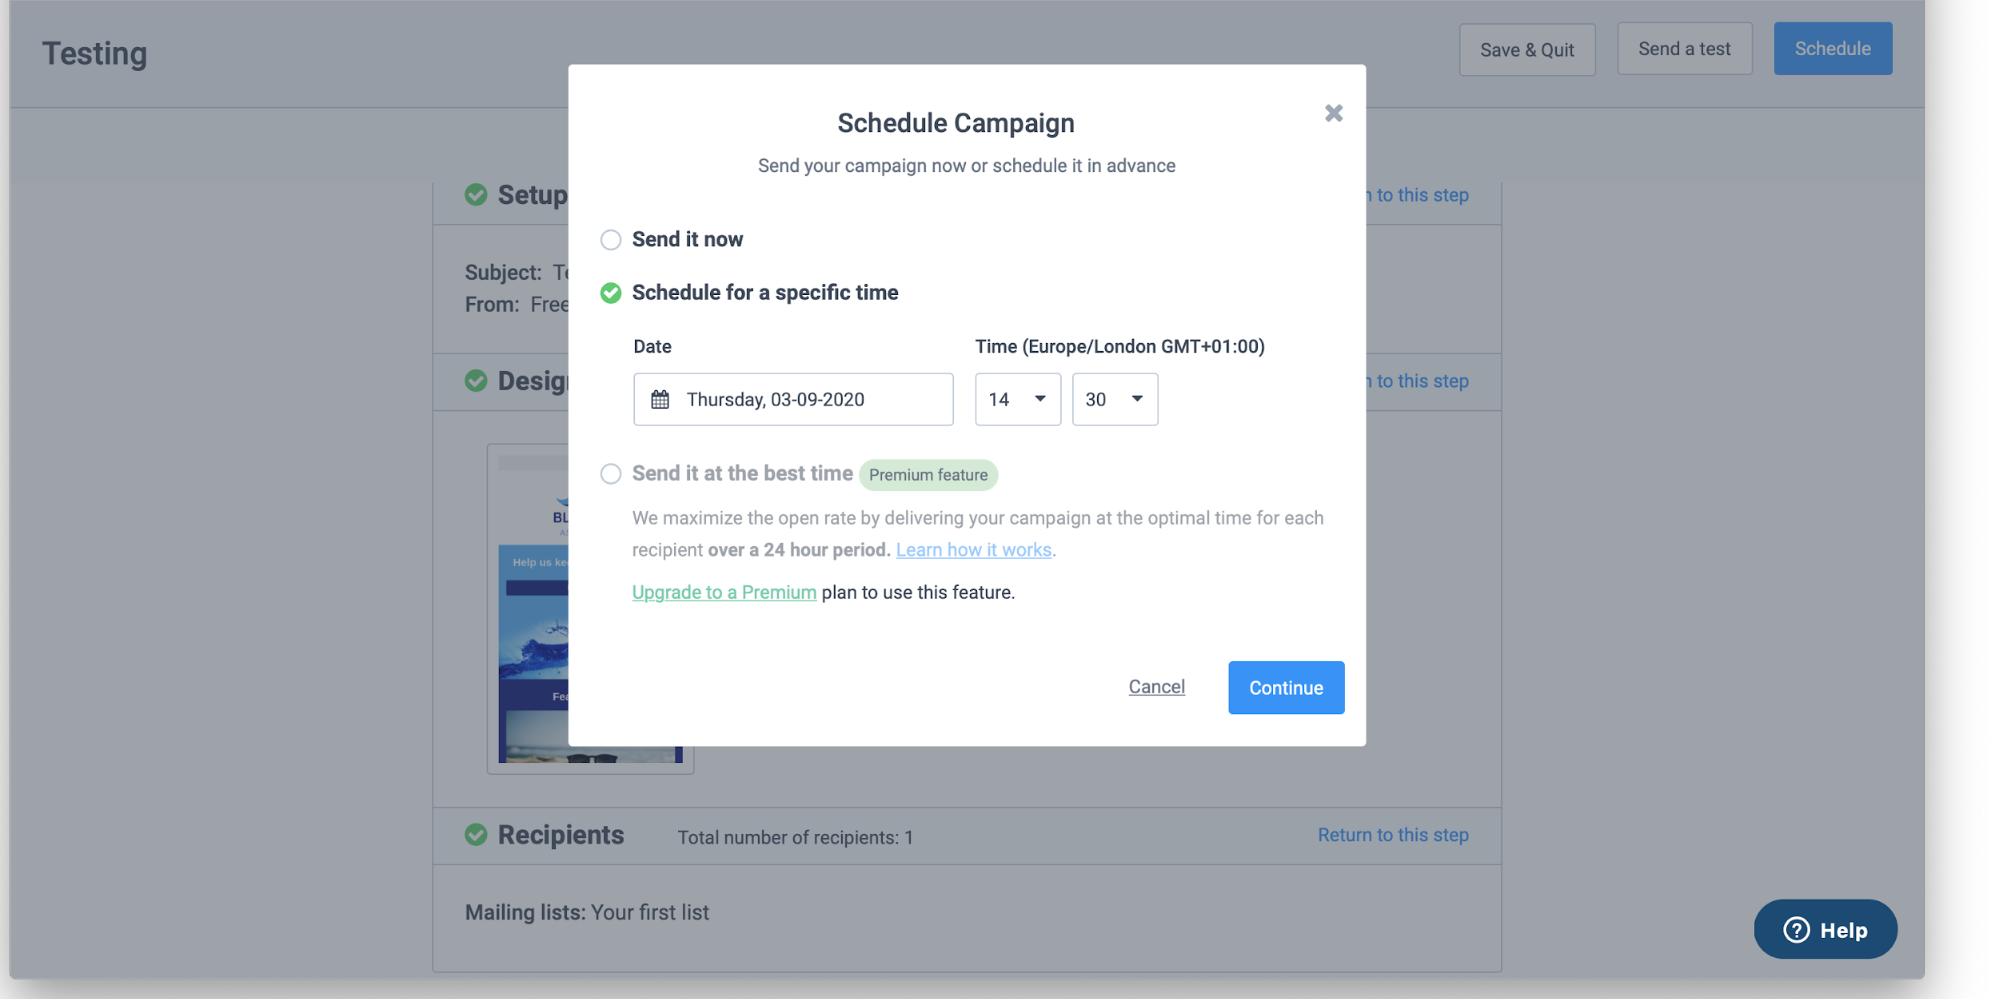 Scheduling an email in Sendinblue